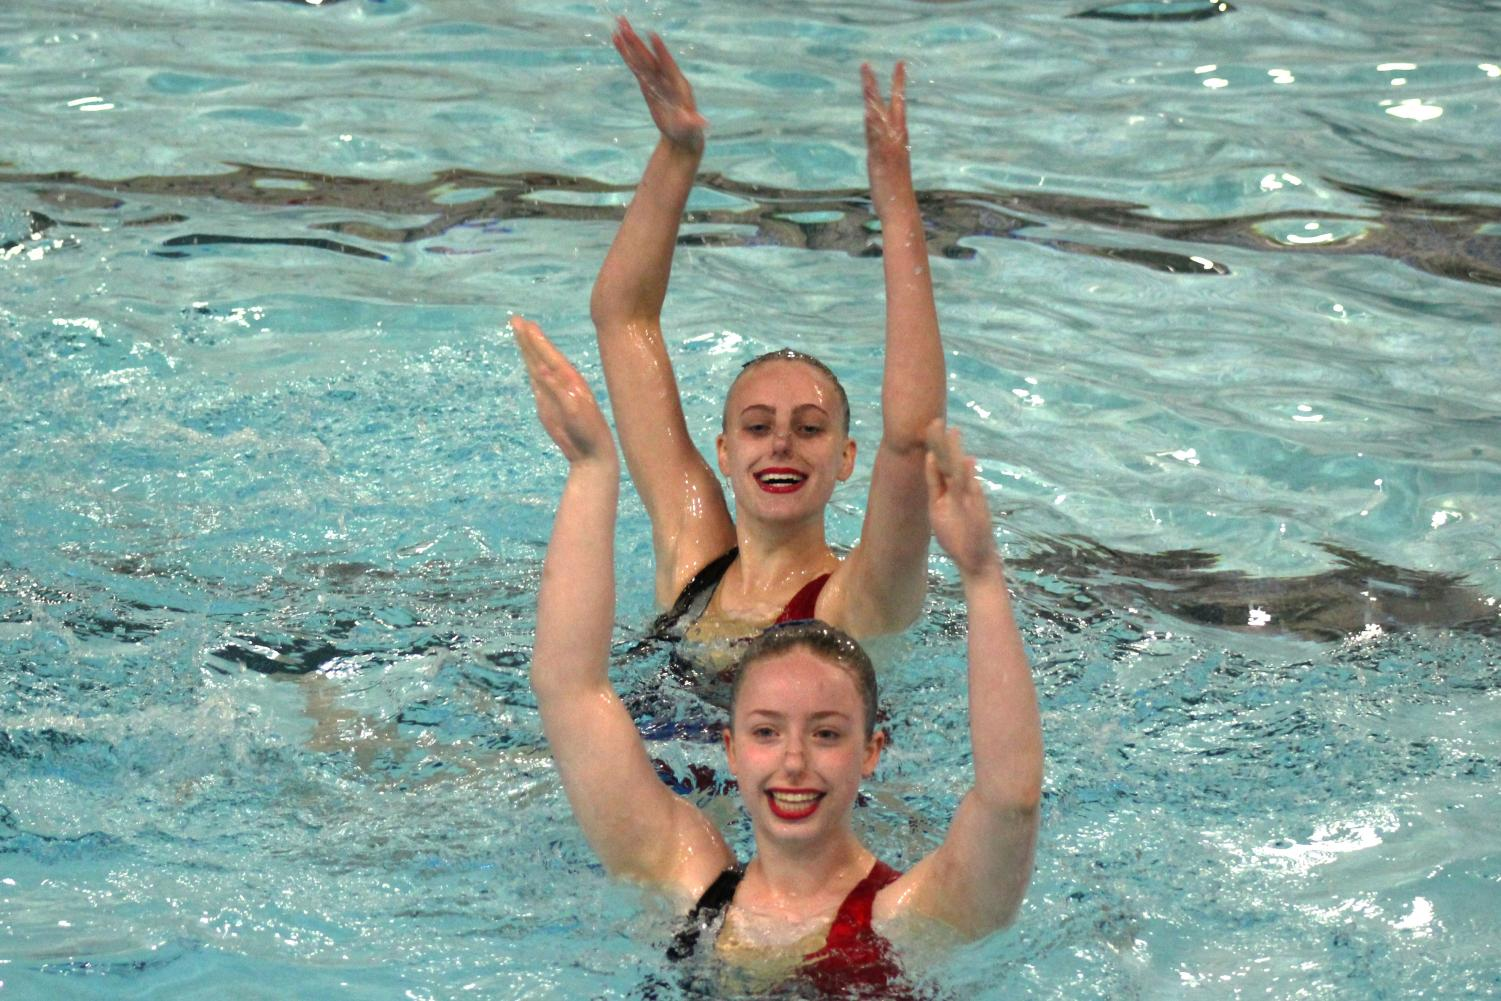 Juniors Ava Tronson and Annie Breyak smile as they perform their team routine at Sections. The routine placed first in the extended team division at Sections, May 18.